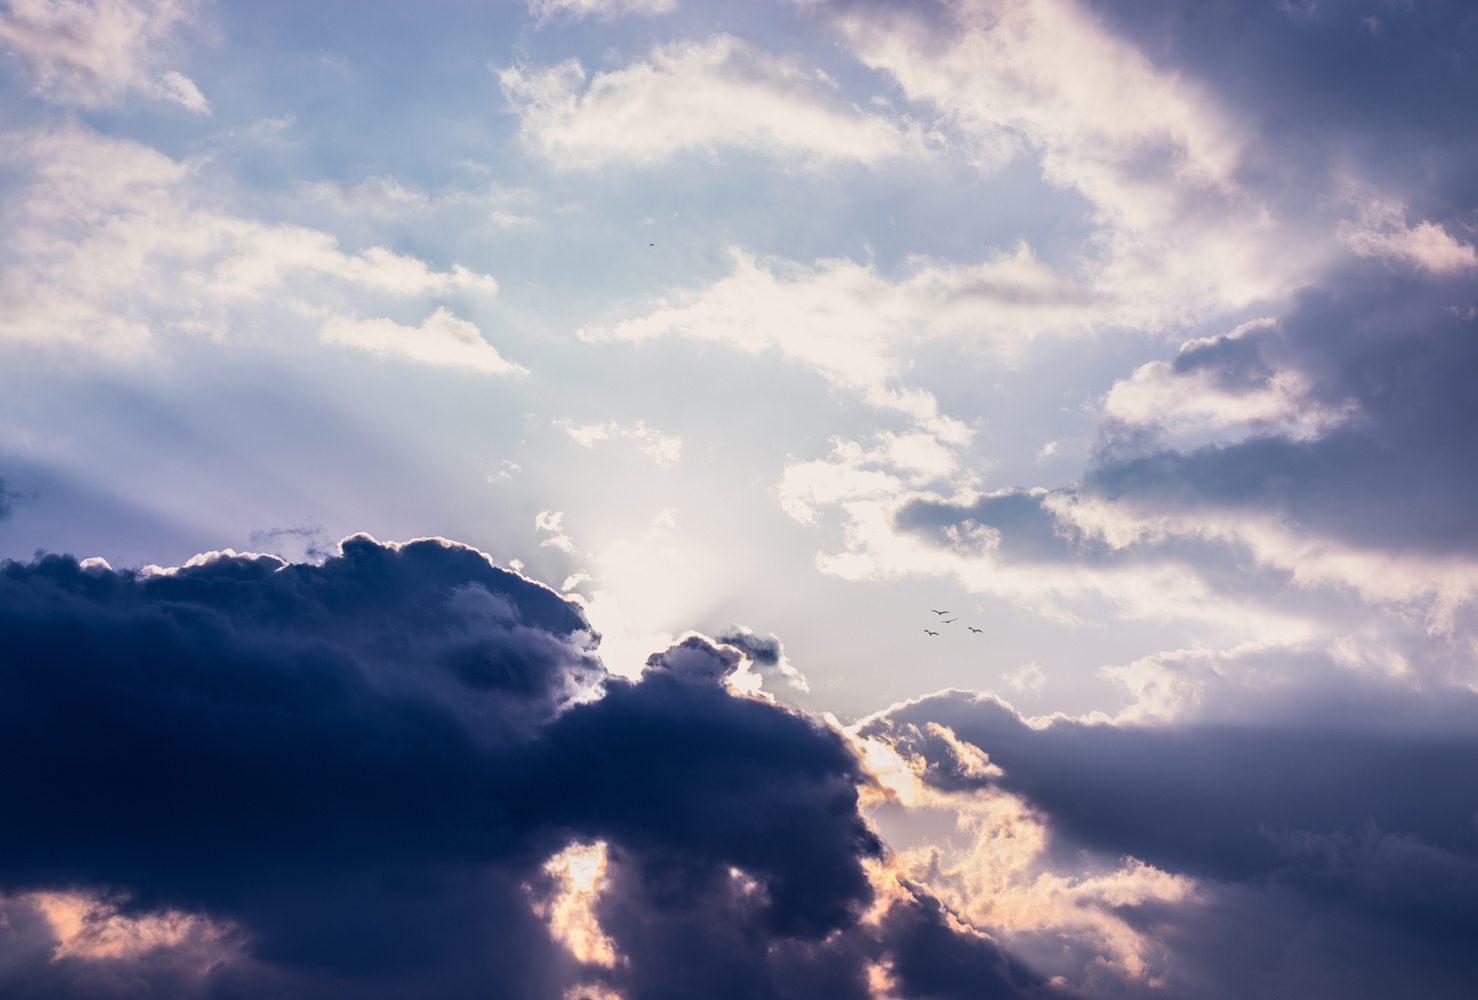 Cloudy sky by Tasos Giannopoulos